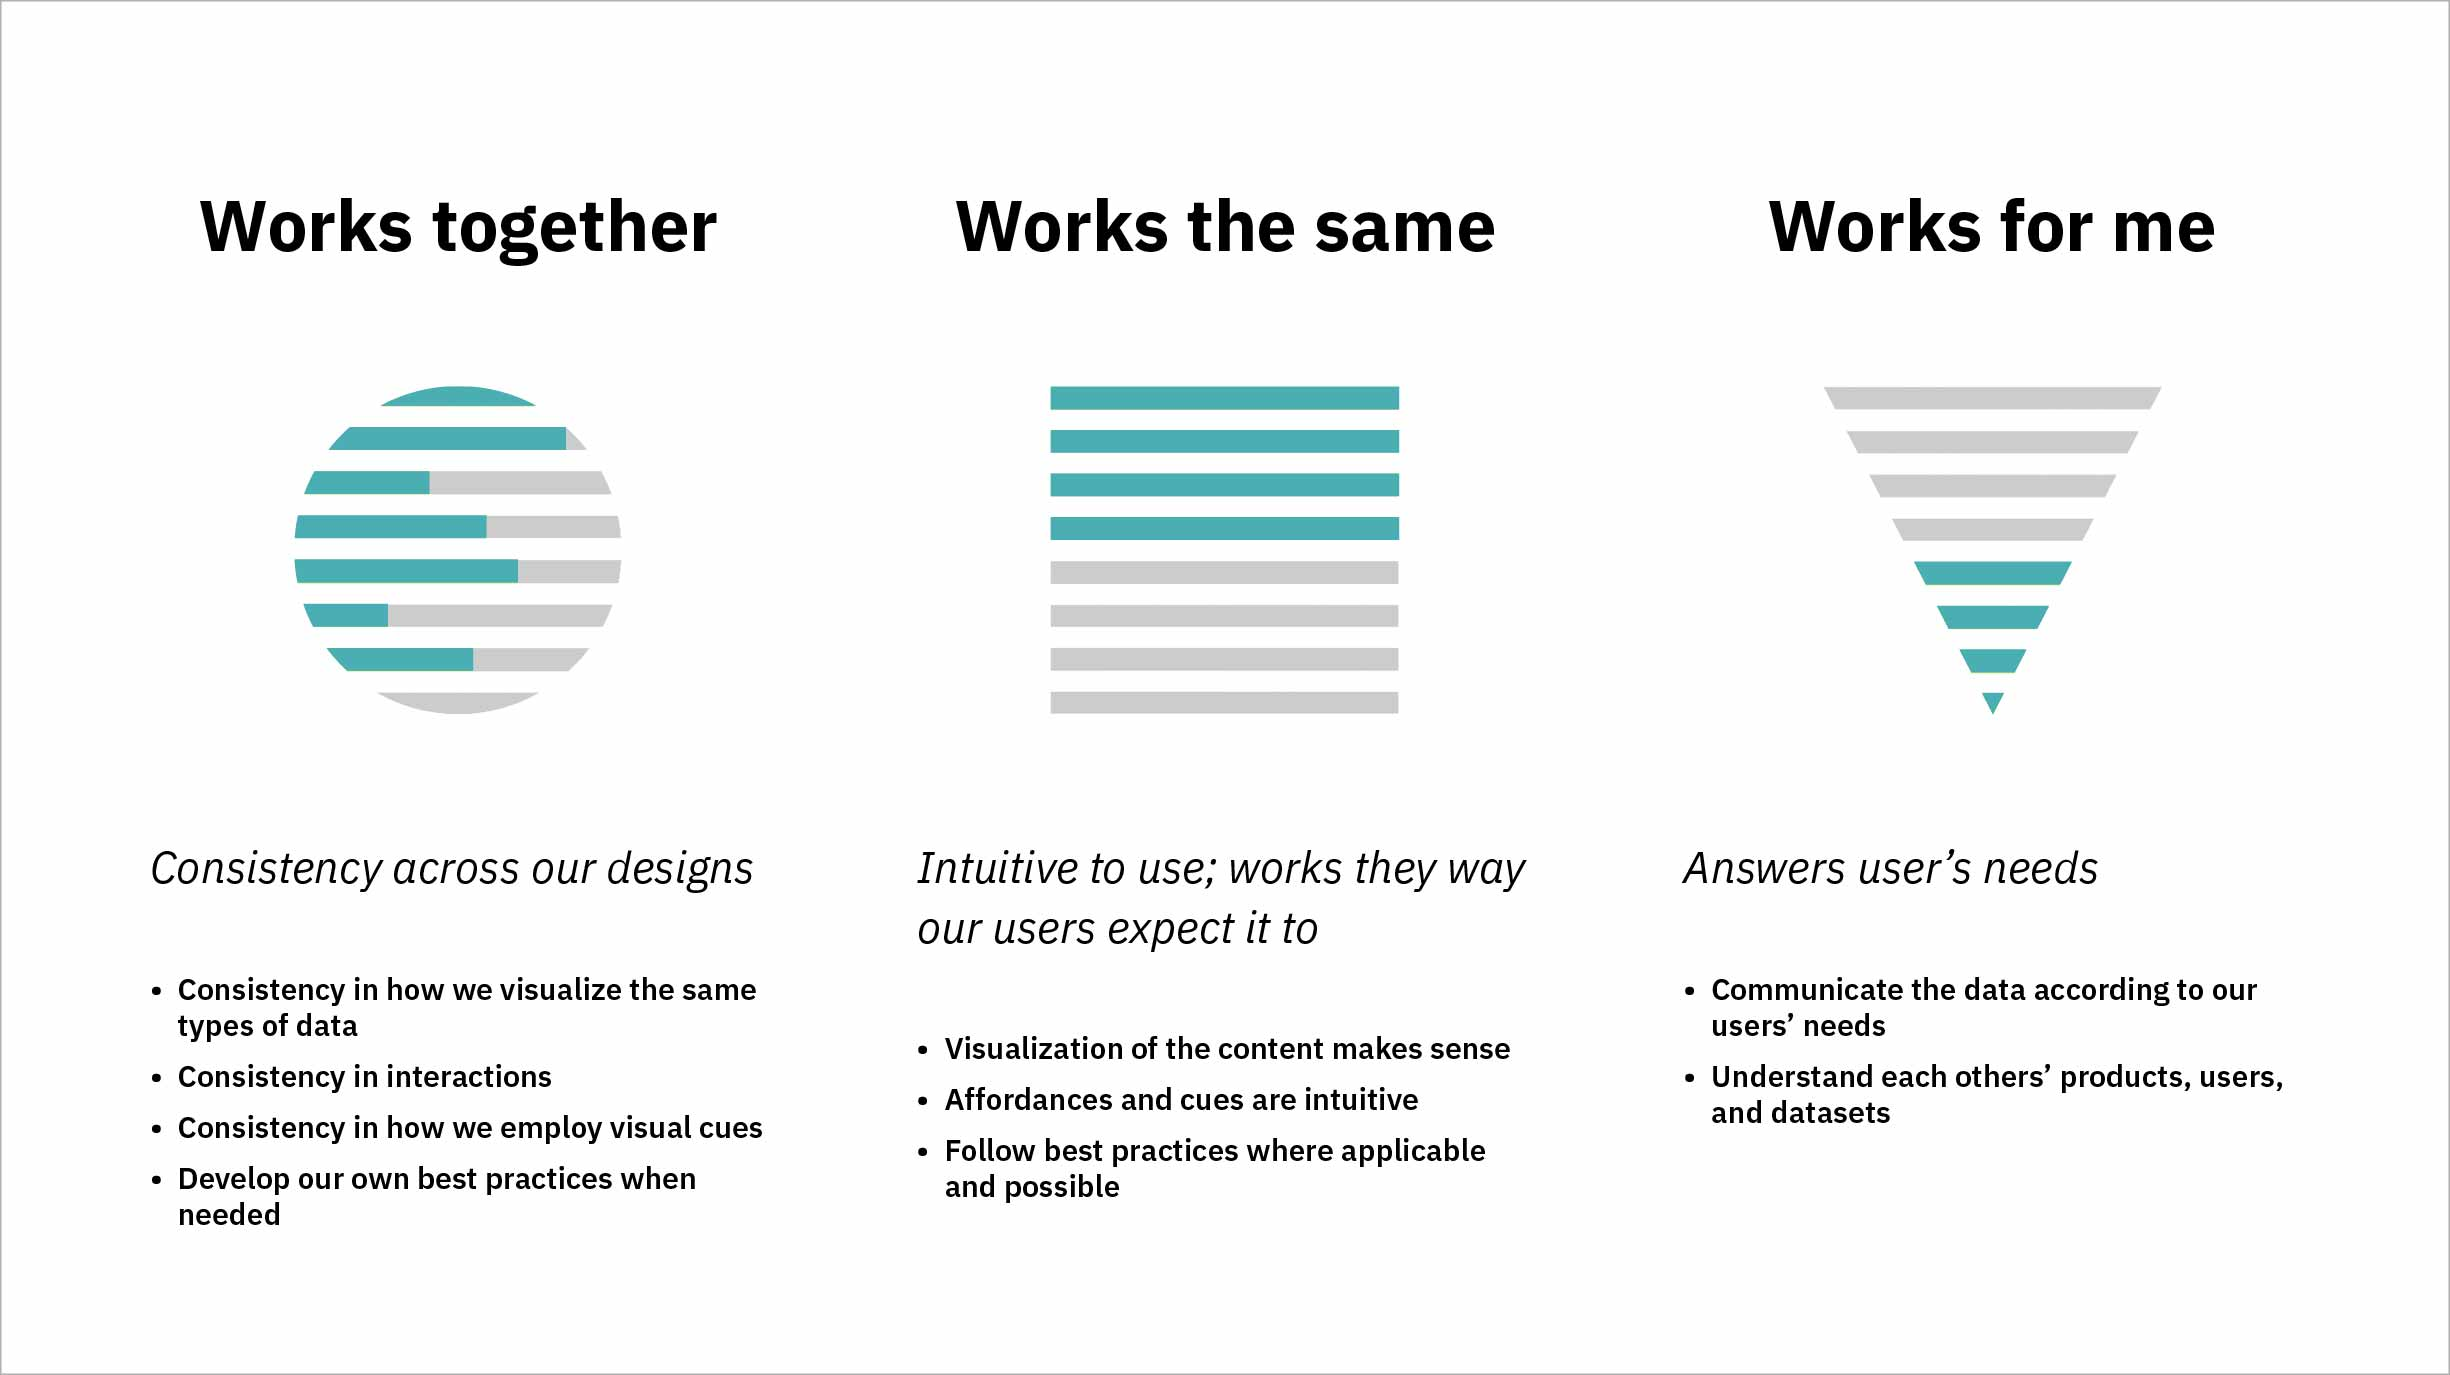 Works together means having consistency across our designs. Works the same means our designs are intuitive to use, and that they work the way our users expect them to. Works for me means that our designs and the outcomes they produce answer our users' needs.